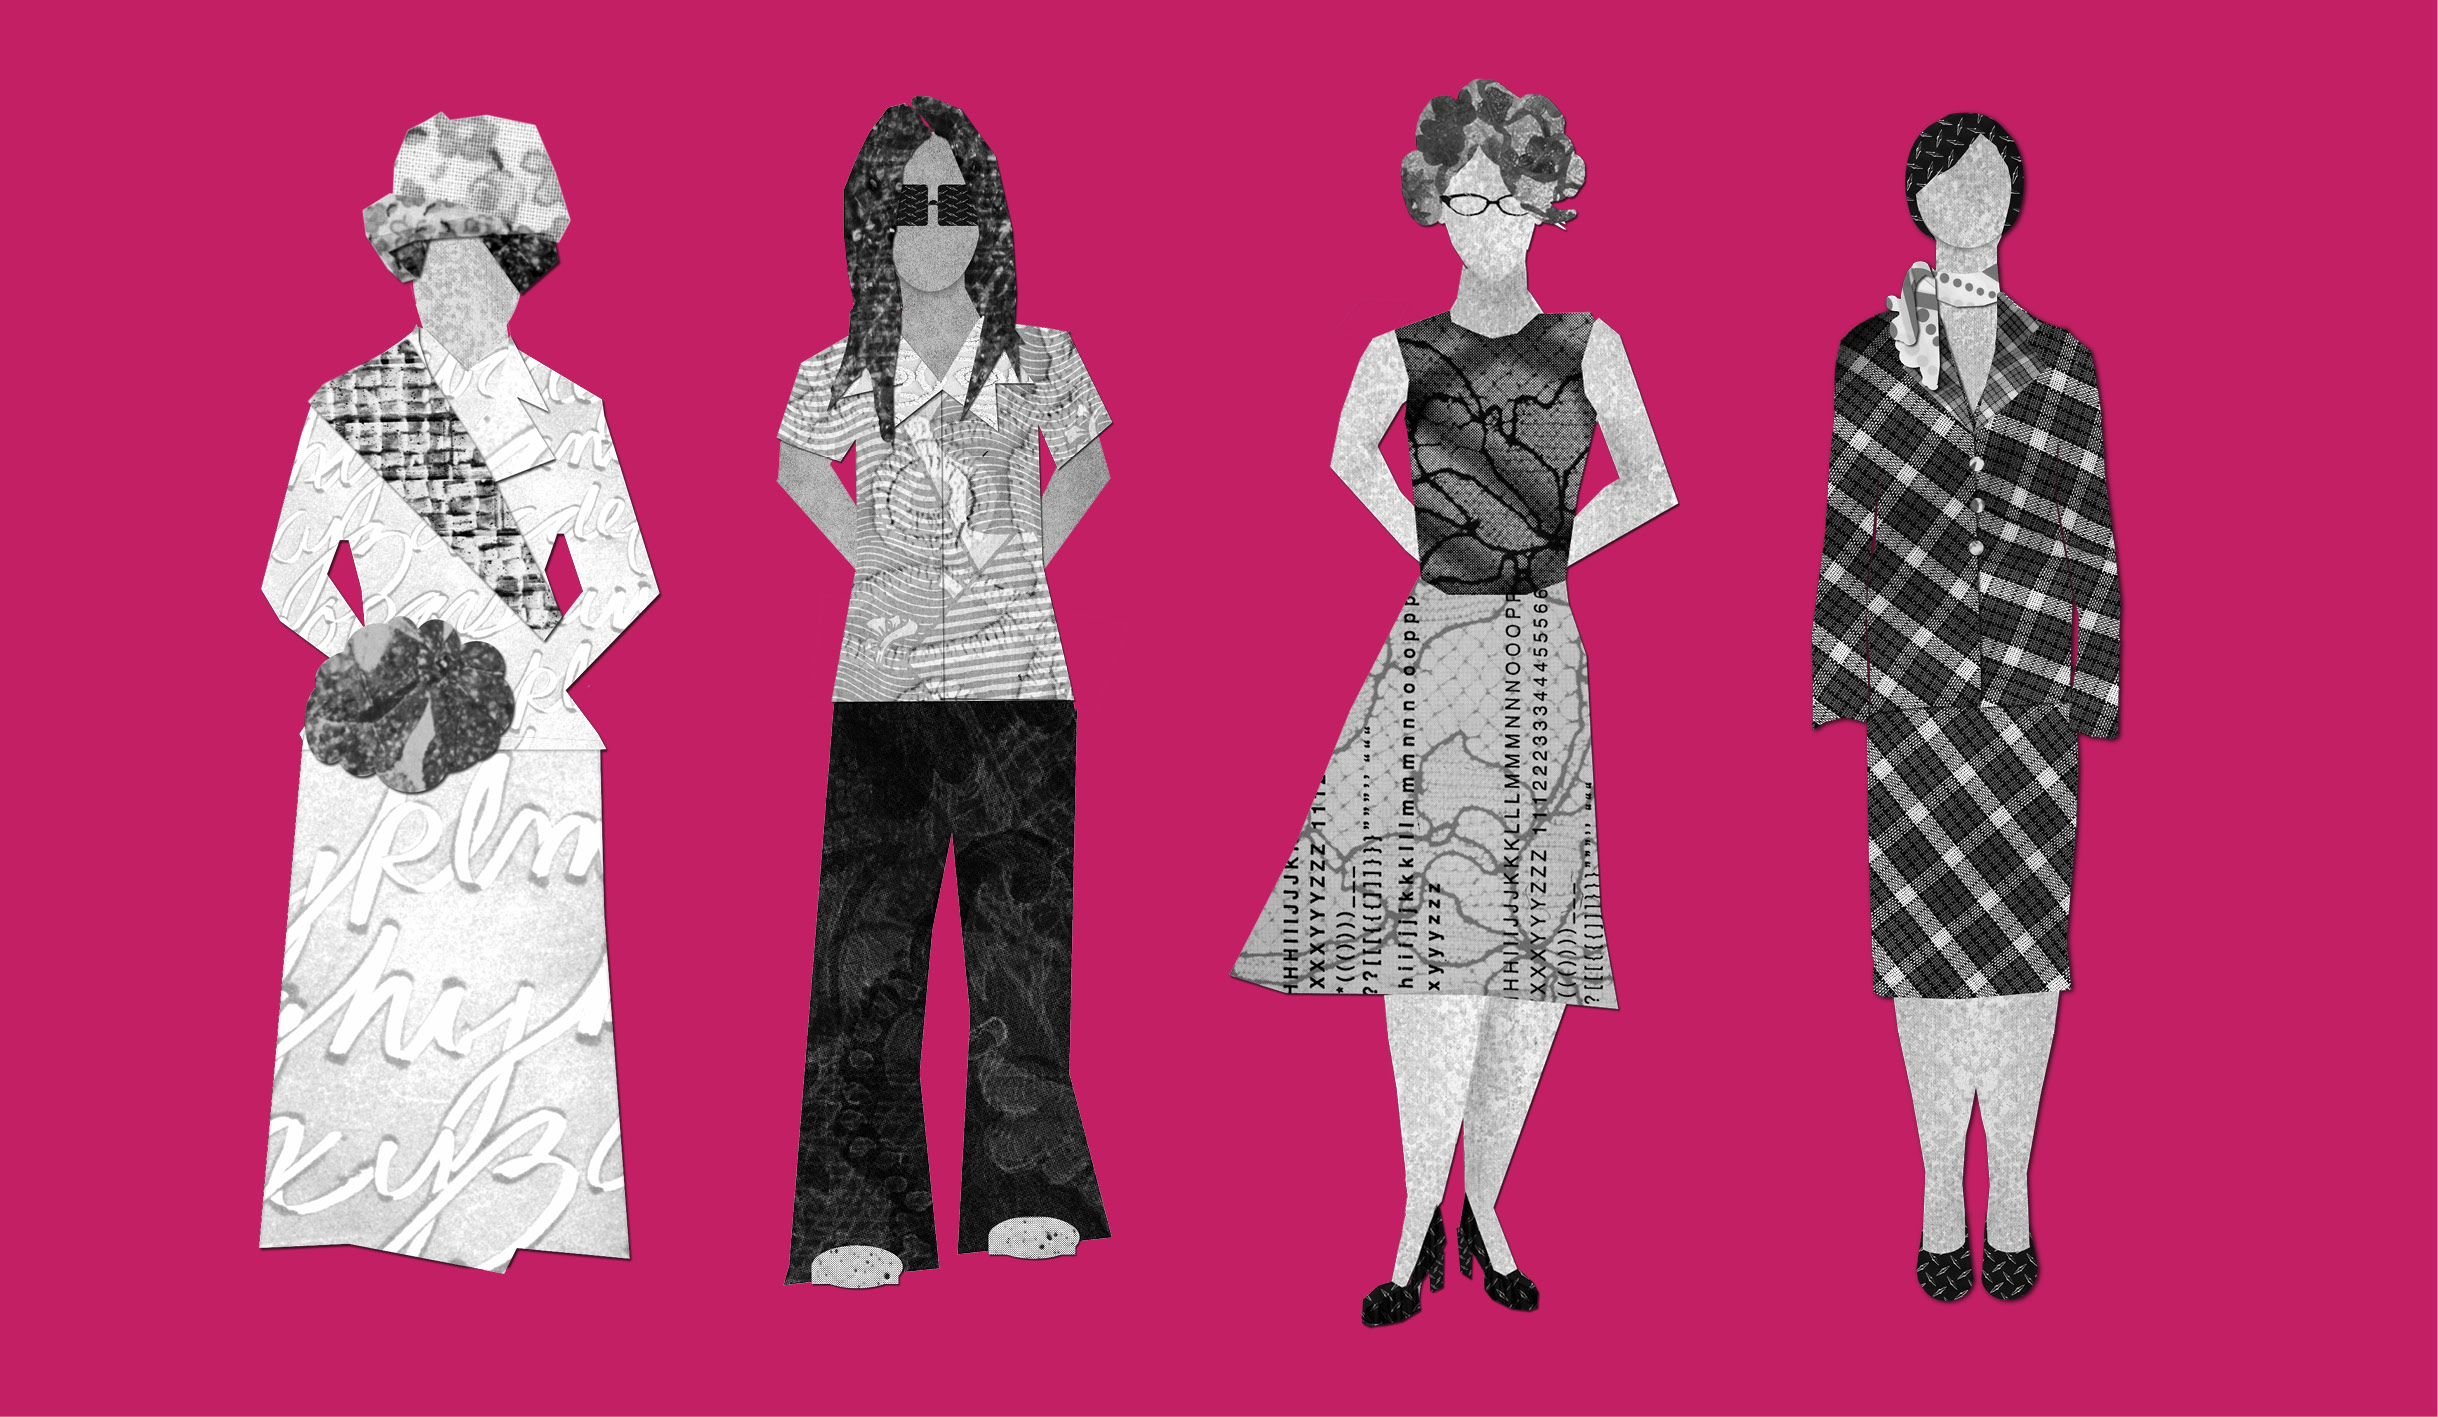 Collaged illustrations of four women representing the different waves of feminism: a suffragette from the 20s, a hippie looking woman from the 70s, and two professionally dressed women.